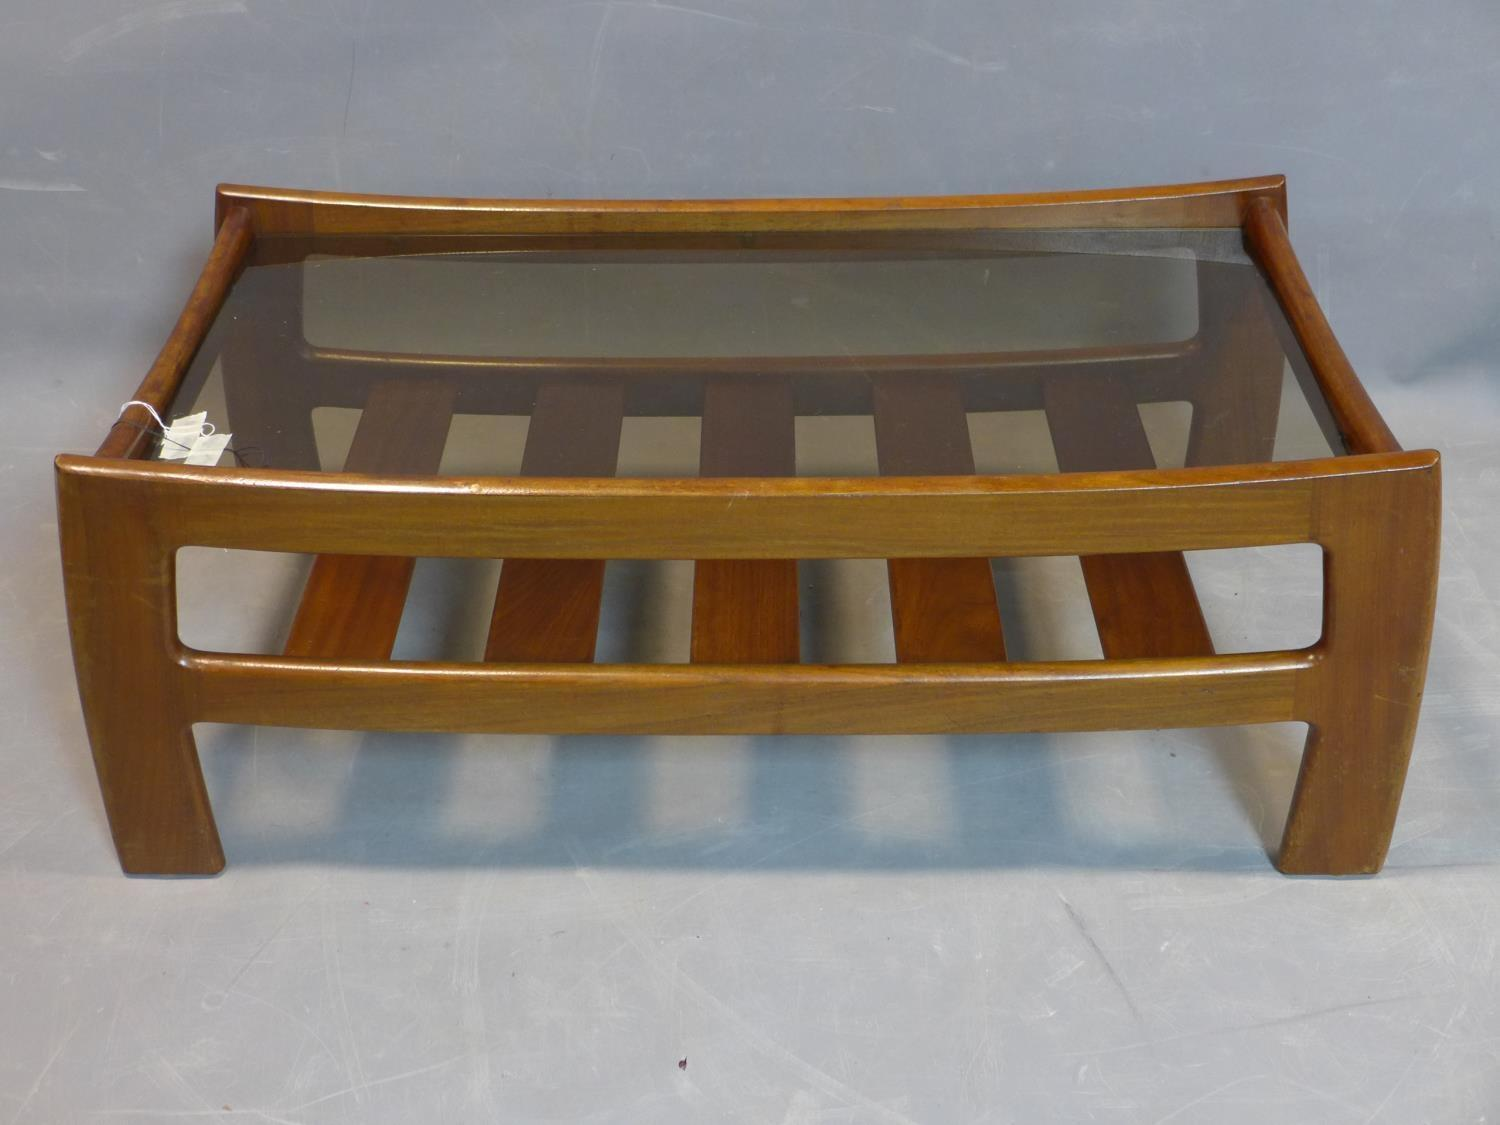 Lot 78 - A mid 20th century teak coffee table, with glass top above undertier rack, H.40 W.105 D.53cm